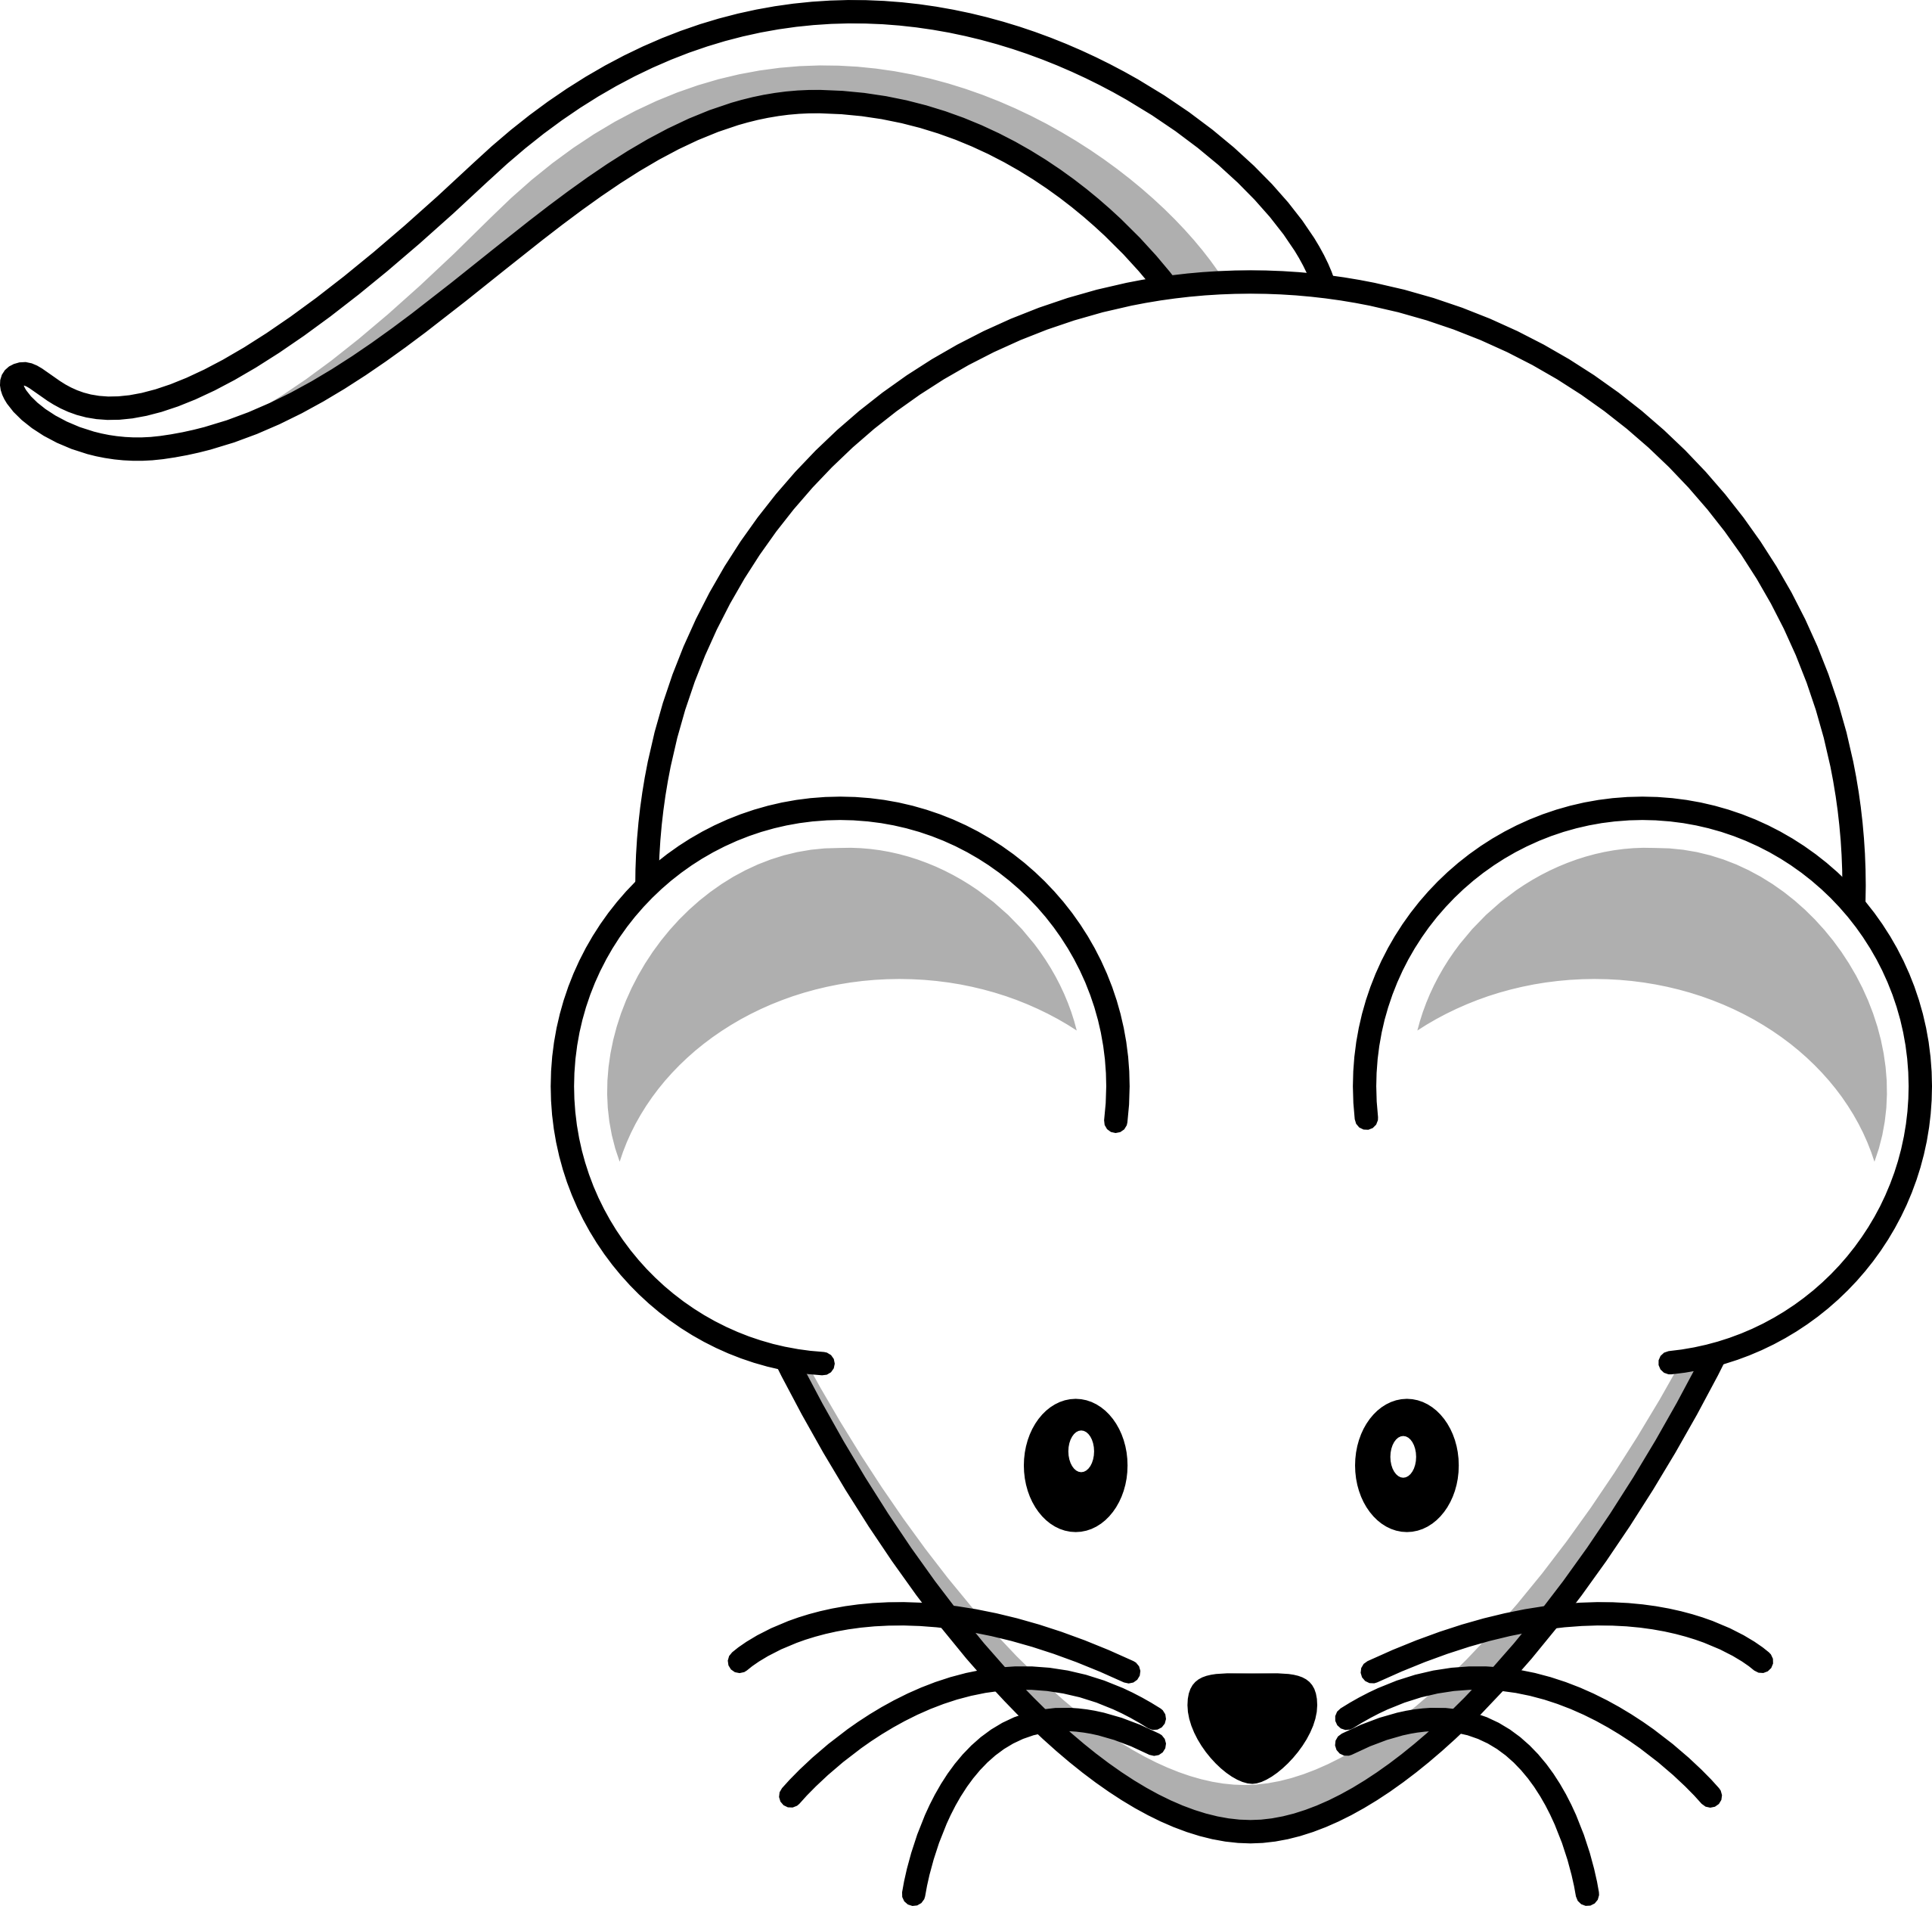 Pumpkin mouse face clipart banner black and white stock Mickey Mouse Face Drawing at GetDrawings.com   Free for personal use ... banner black and white stock